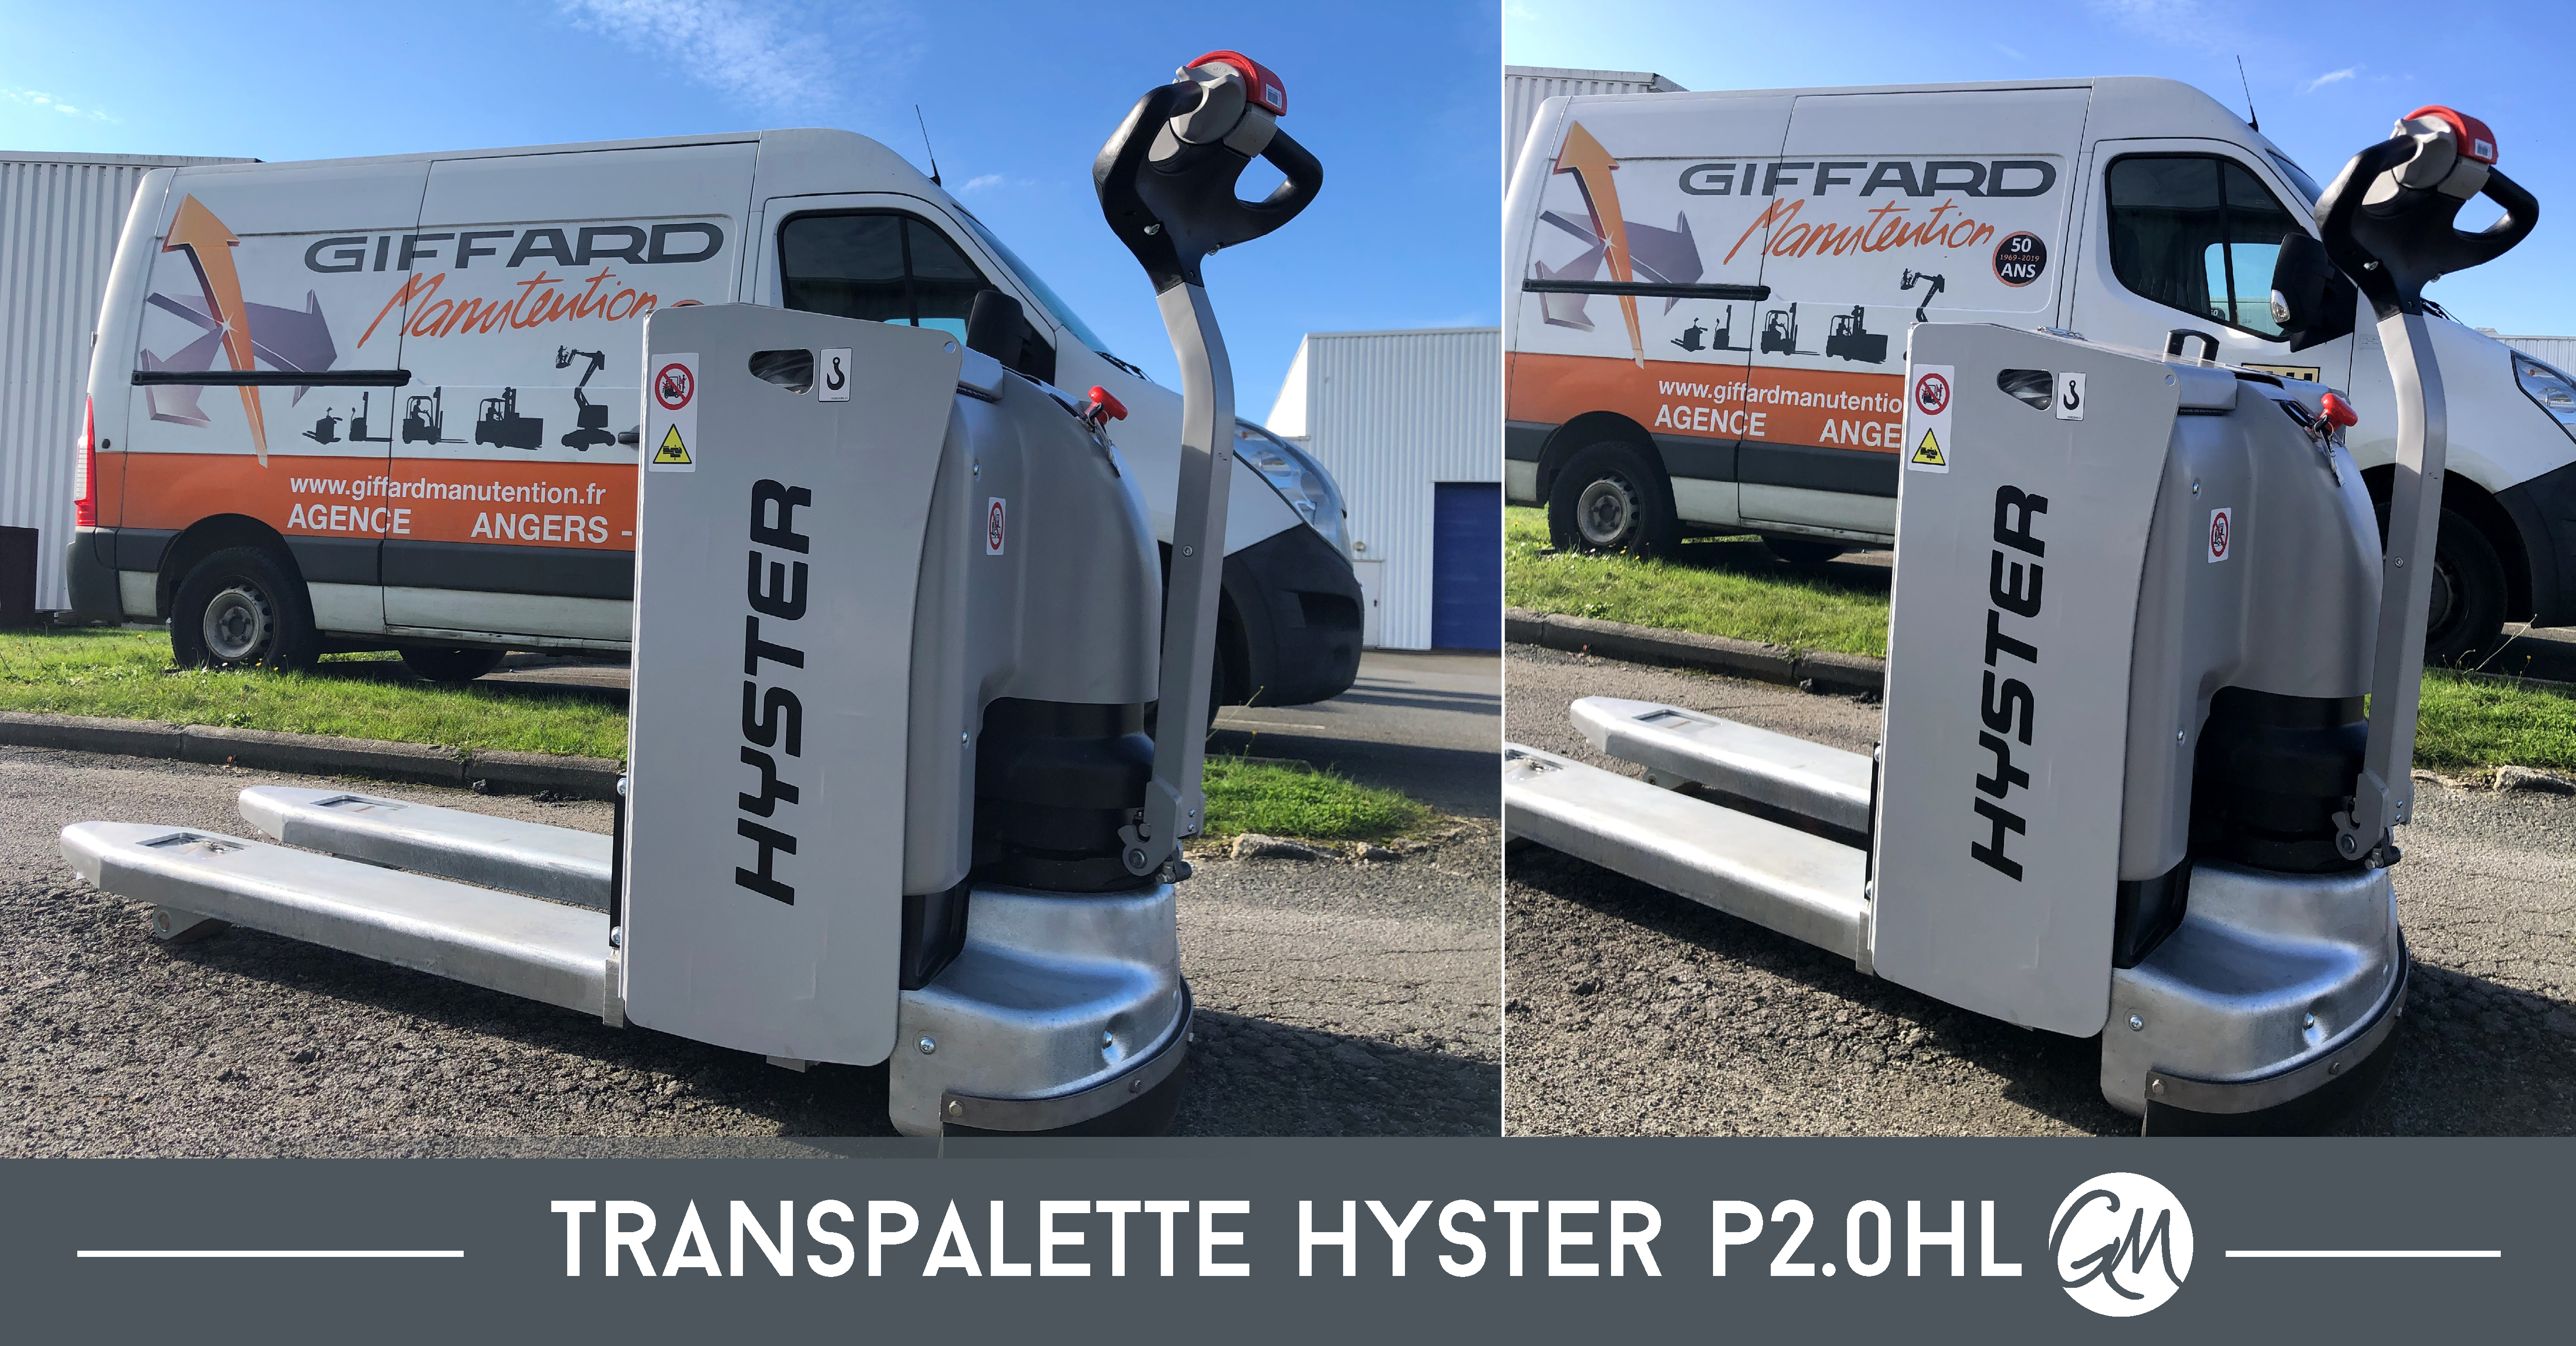 Un transpalette électrique P2.0HL distributé par Giffard Manutention